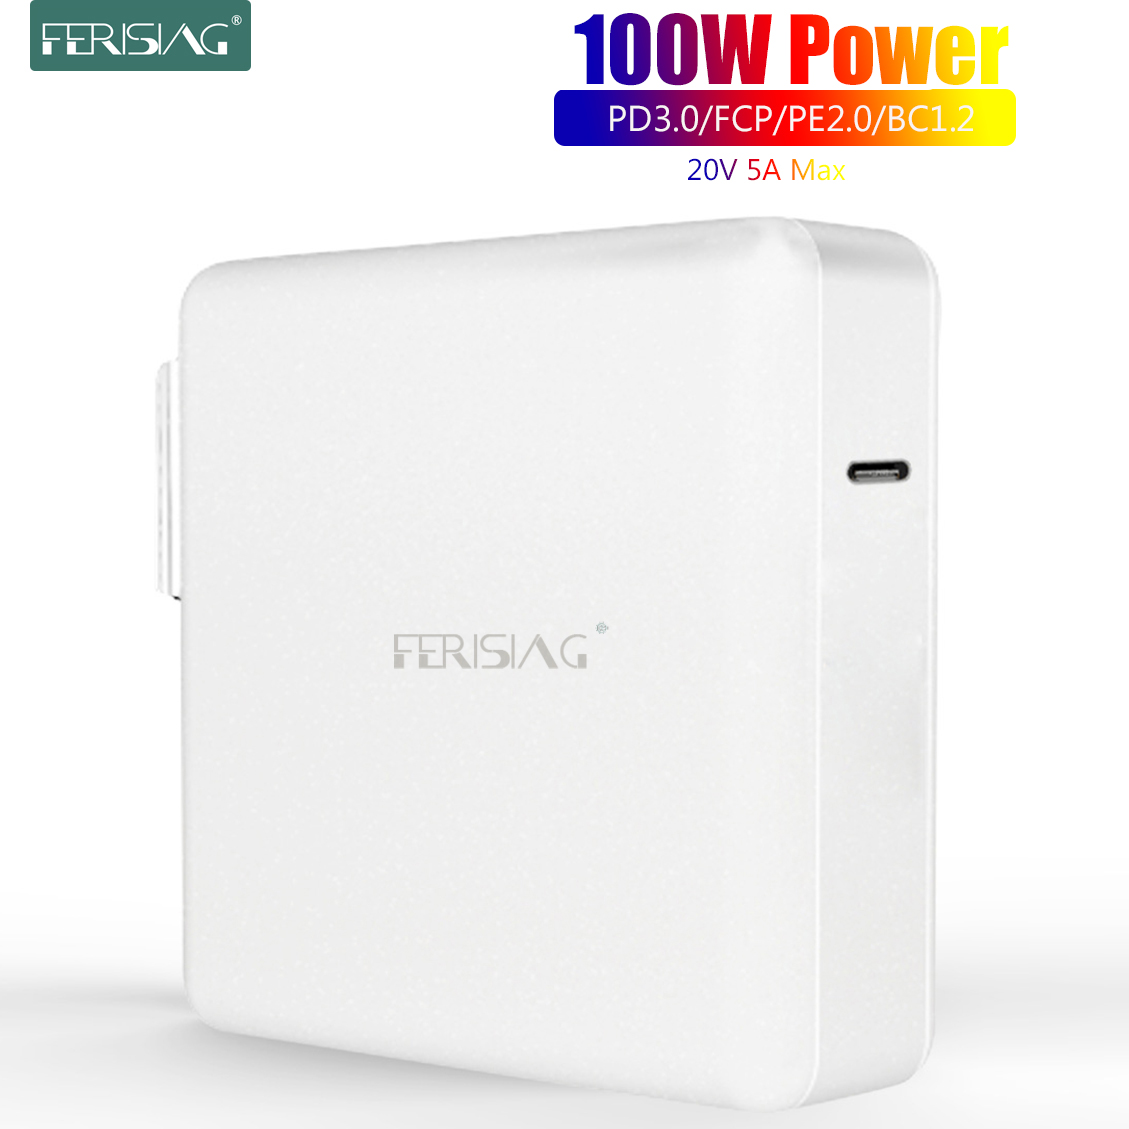 FERISING <font><b>100W</b></font> PD <font><b>Fast</b></font> Quick <font><b>Charger</b></font> Type-C USB C QC3.0 QC4.0 Power for MacBook Pro Air 13'' 14'' 15'' iPad iPhone Samsung Xiaomi image